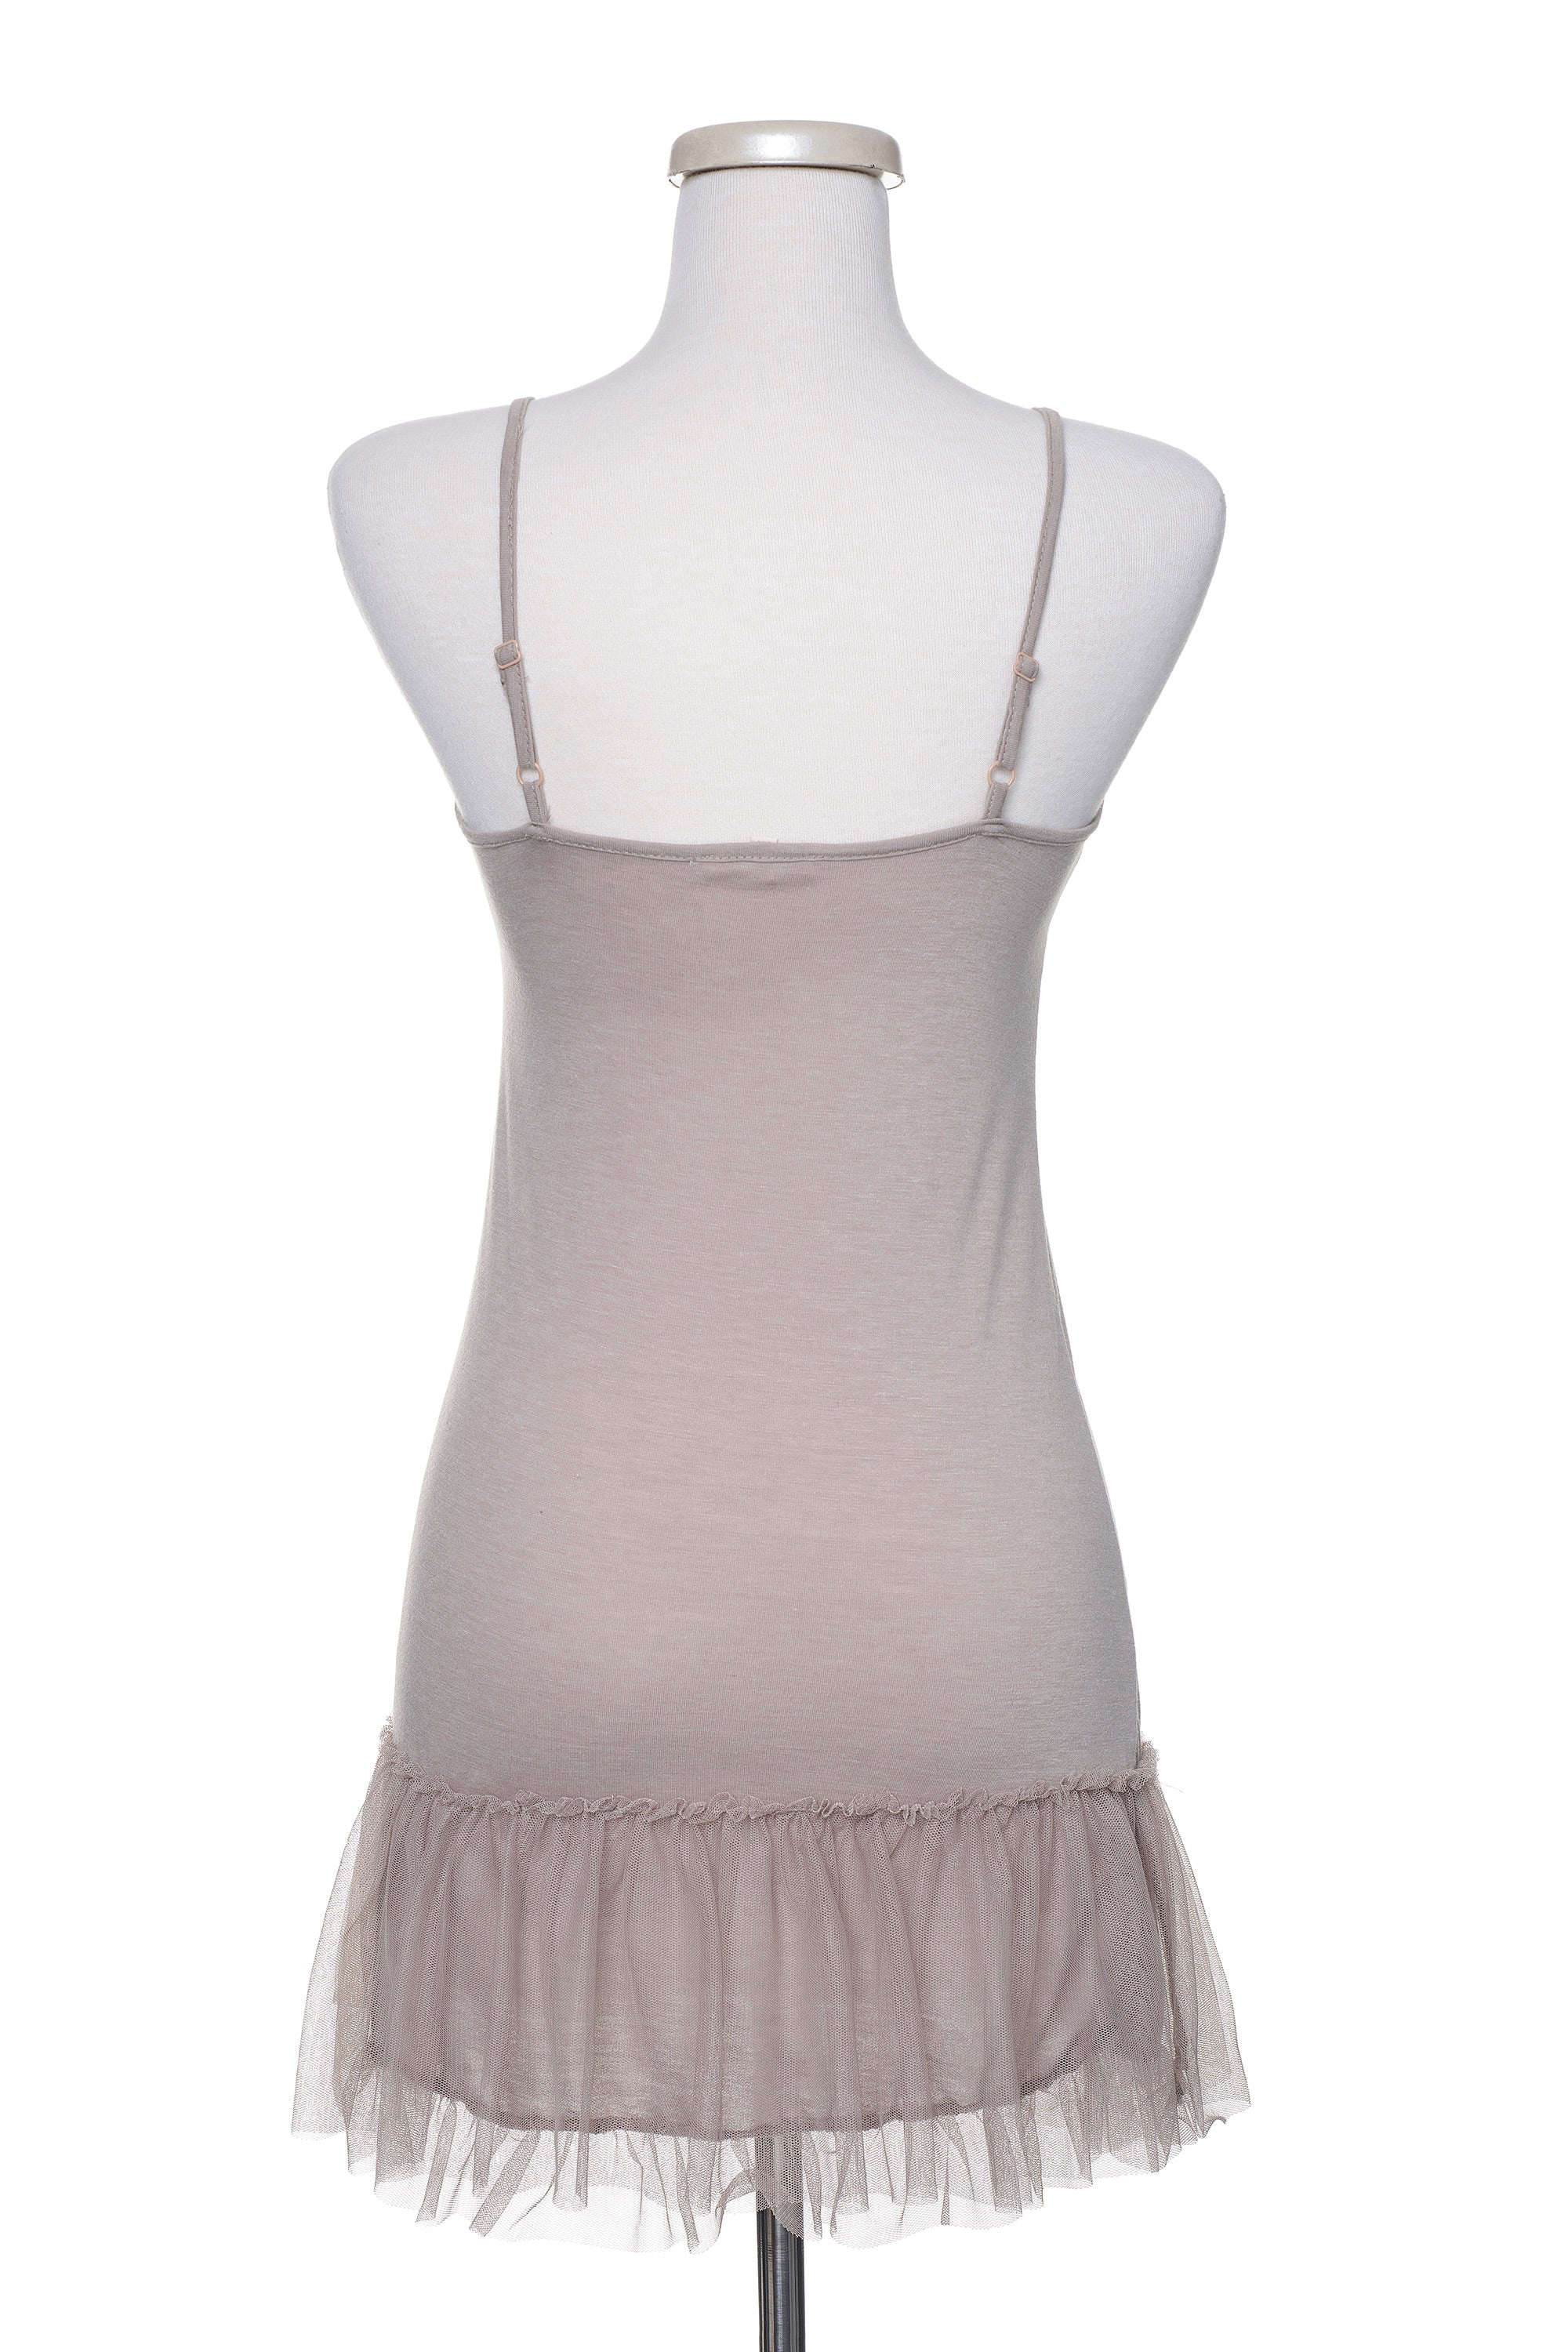 Type 2 Tulle Extender Slip in Taupe